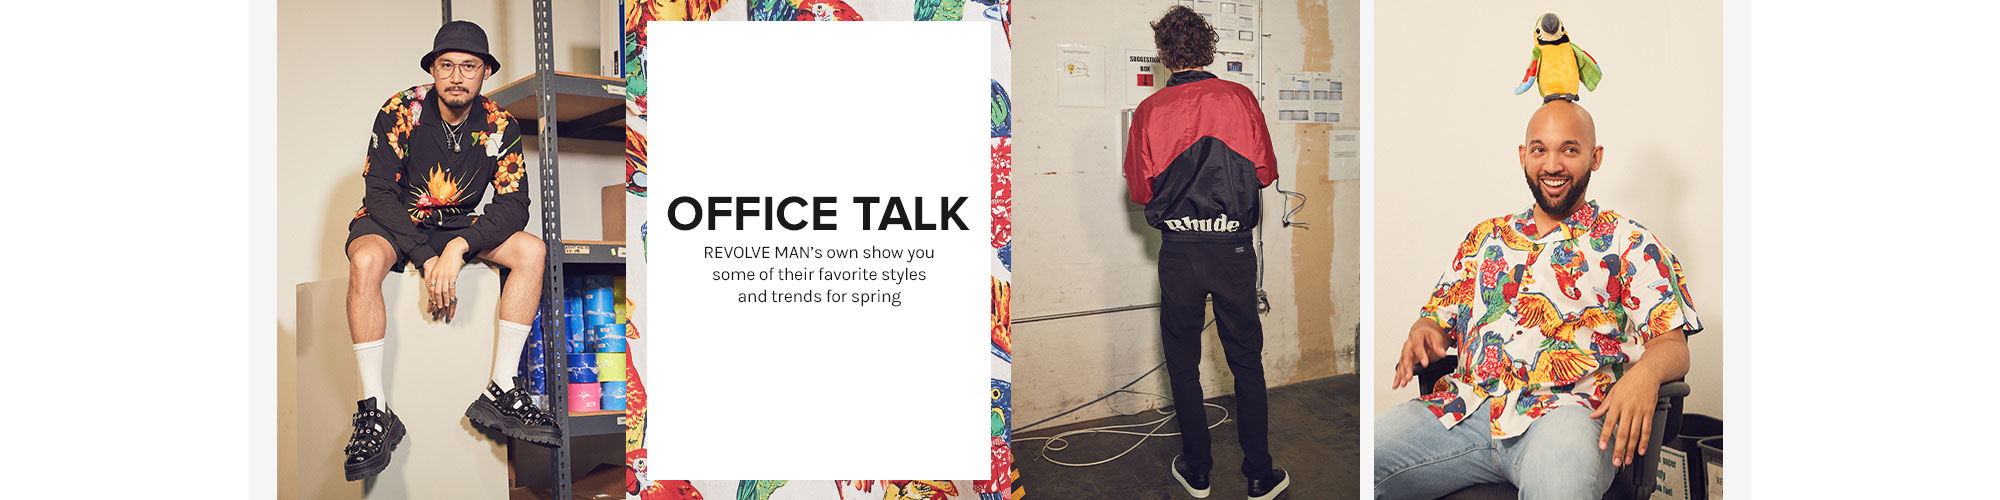 Office Talk. REVOLVE MAN\u2019s own show you some of their favorites styles and trends for spring. Shop Their Picks.